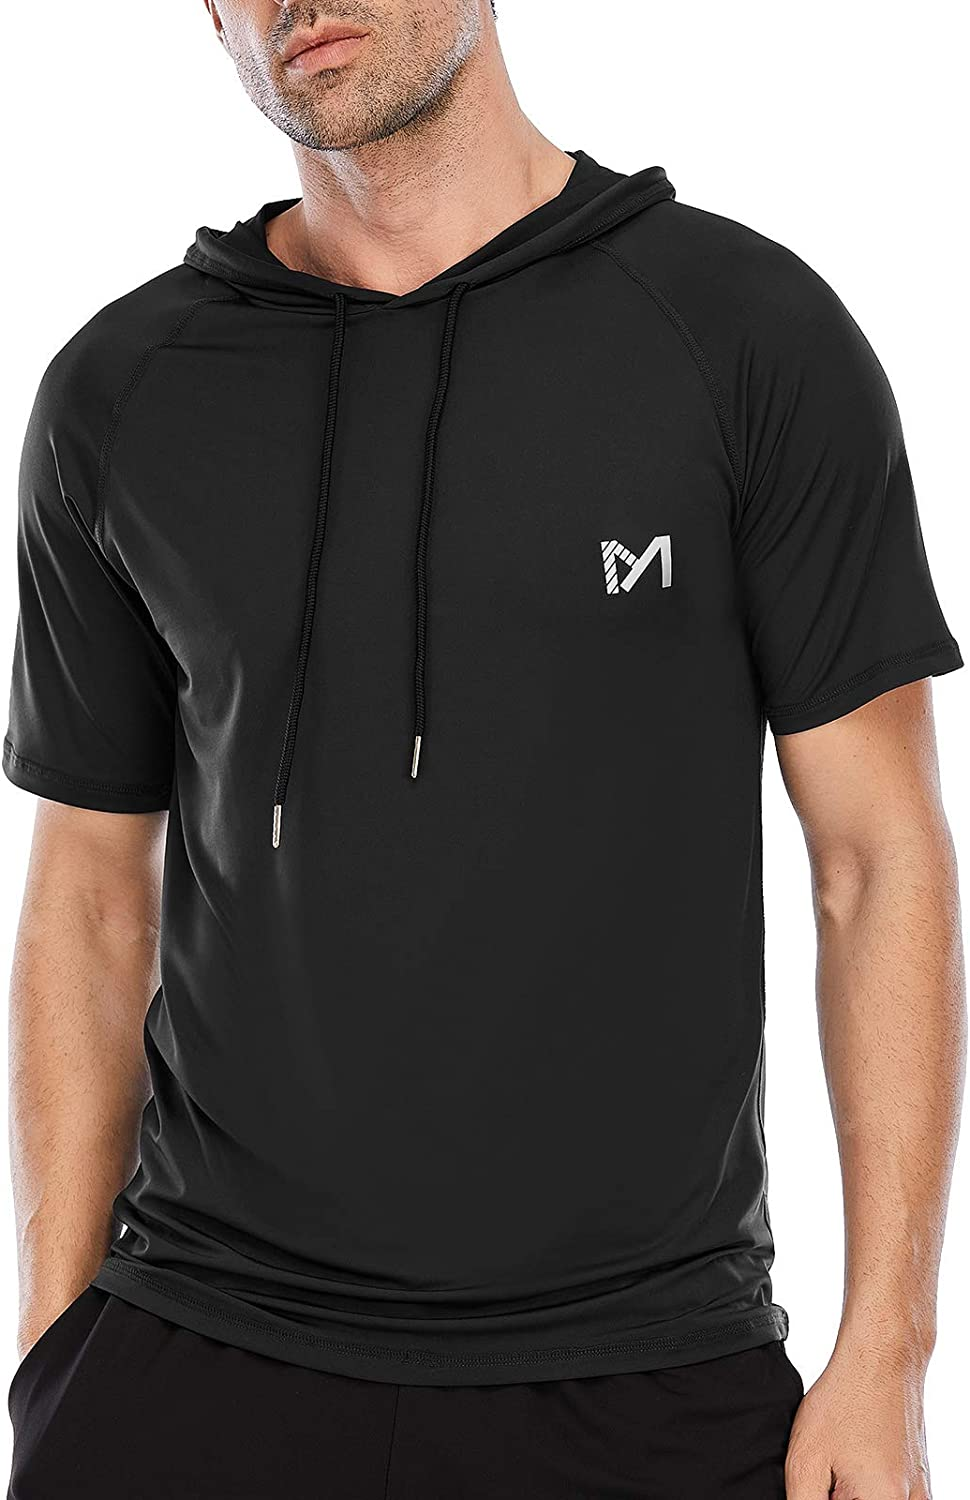 It is very popular Athletic Shirt for Men Short w Workout Year-end gift Sleeve Gym Running